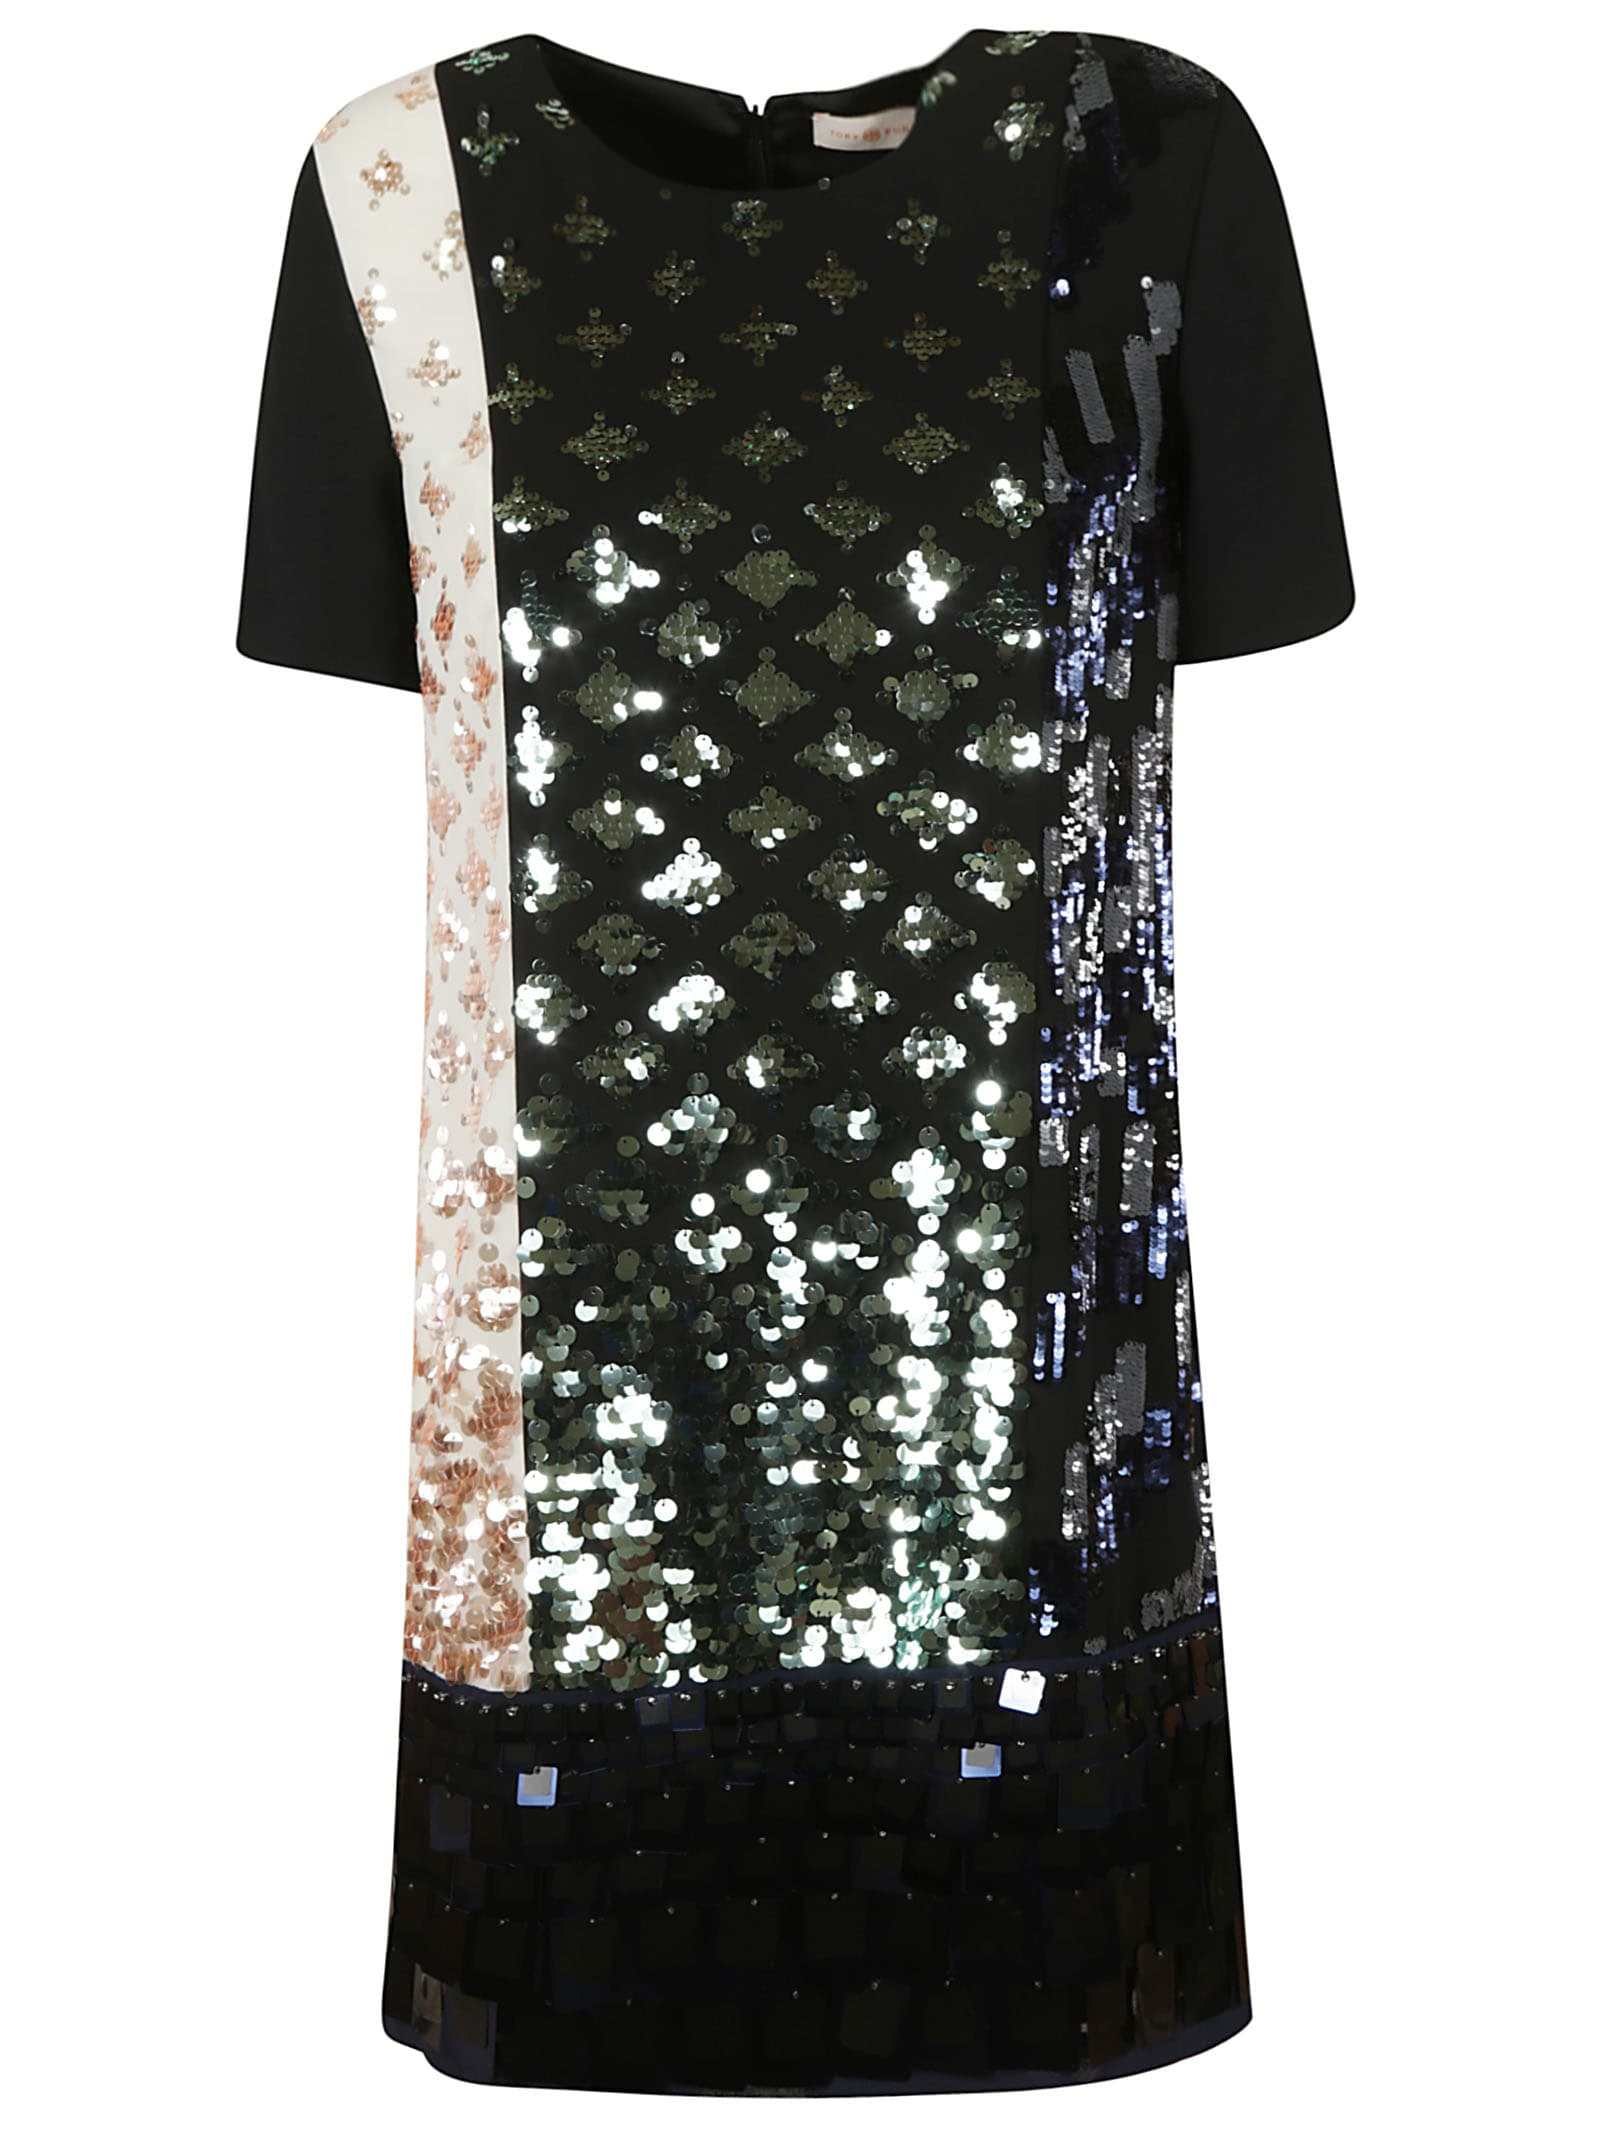 Buy Tory Burch Color-block Sequin T-shirt Dress online, shop Tory Burch with free shipping